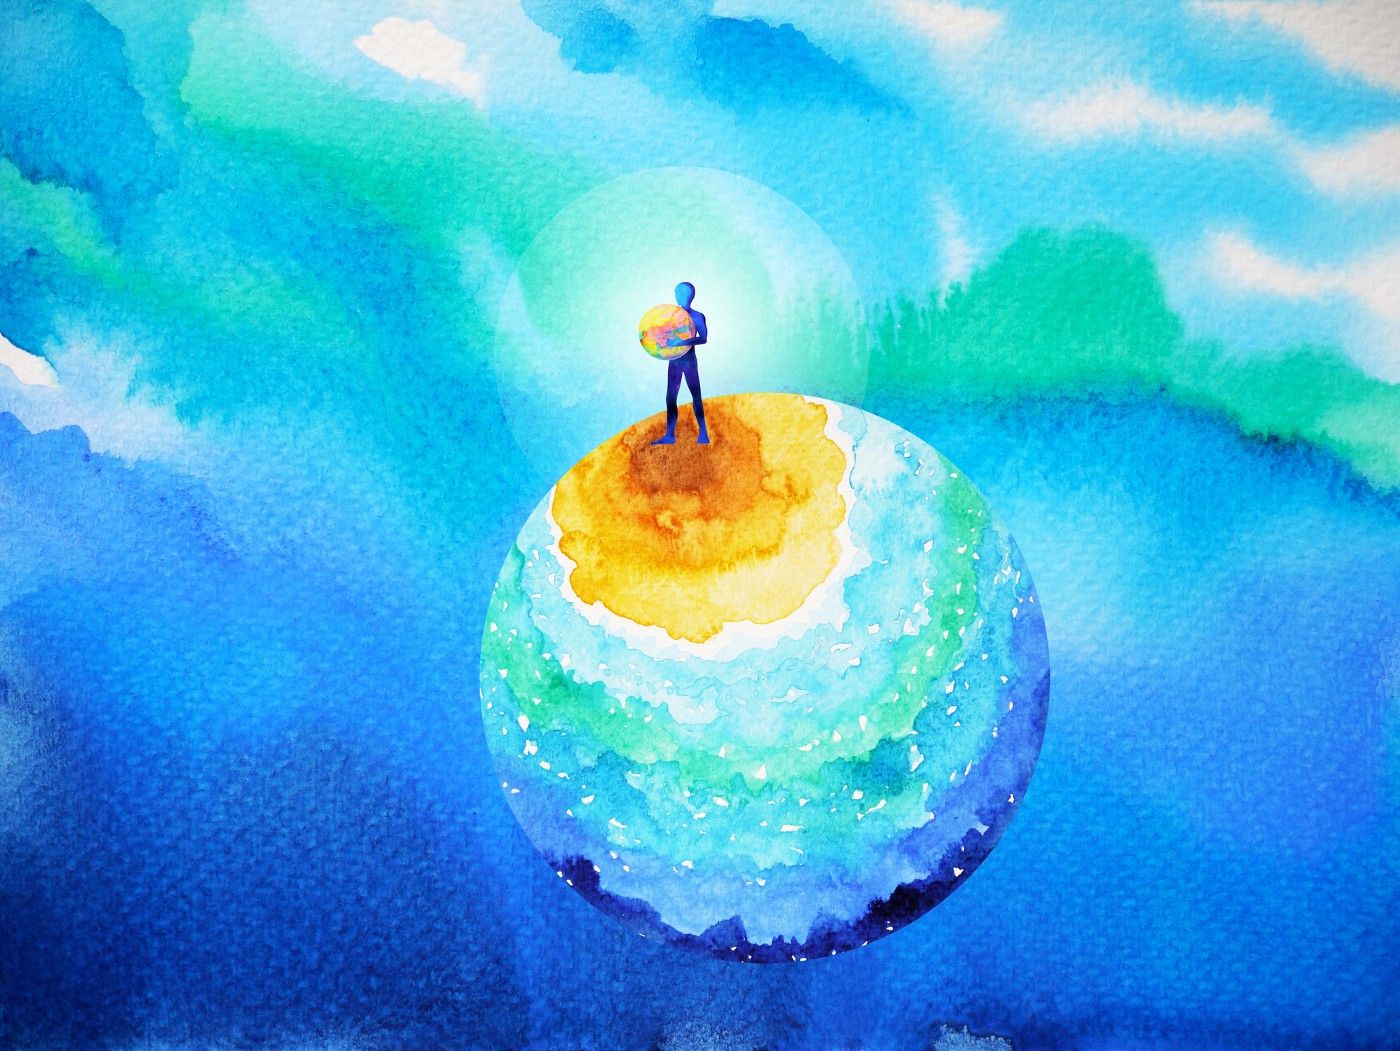 Watercolor illustration of a person standing on a colorful globe holding a globe.